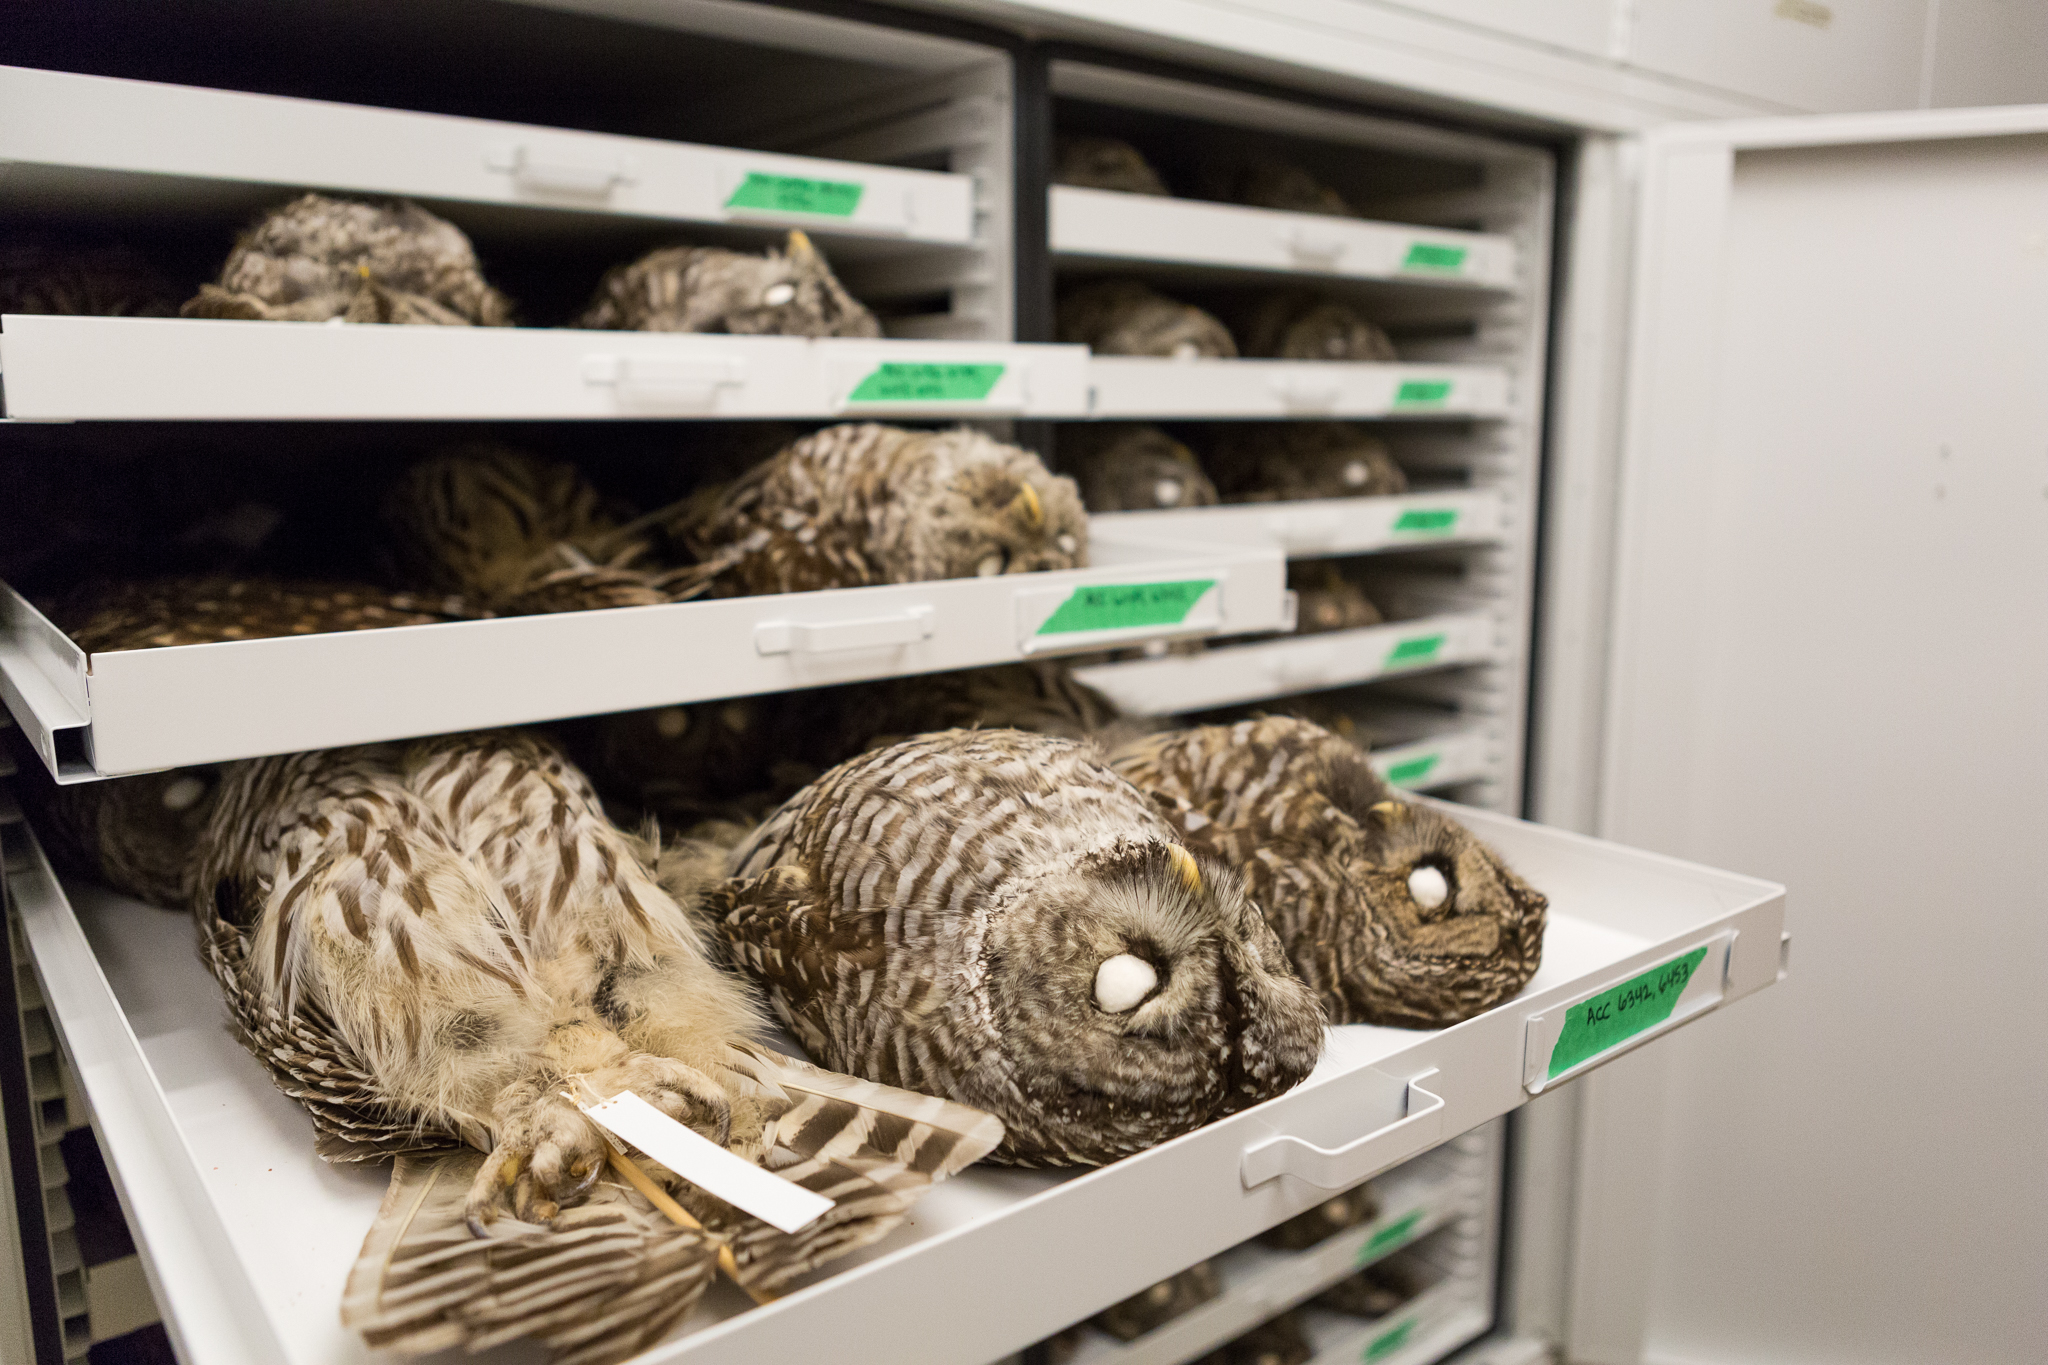 Jack Dumbacher and other scientists use barred owl specimens housed at the California Academy of Sciences in studies of the impacts of rodenticides on both barred and spotted owls, and in genomics research on the two species and their hybrids.